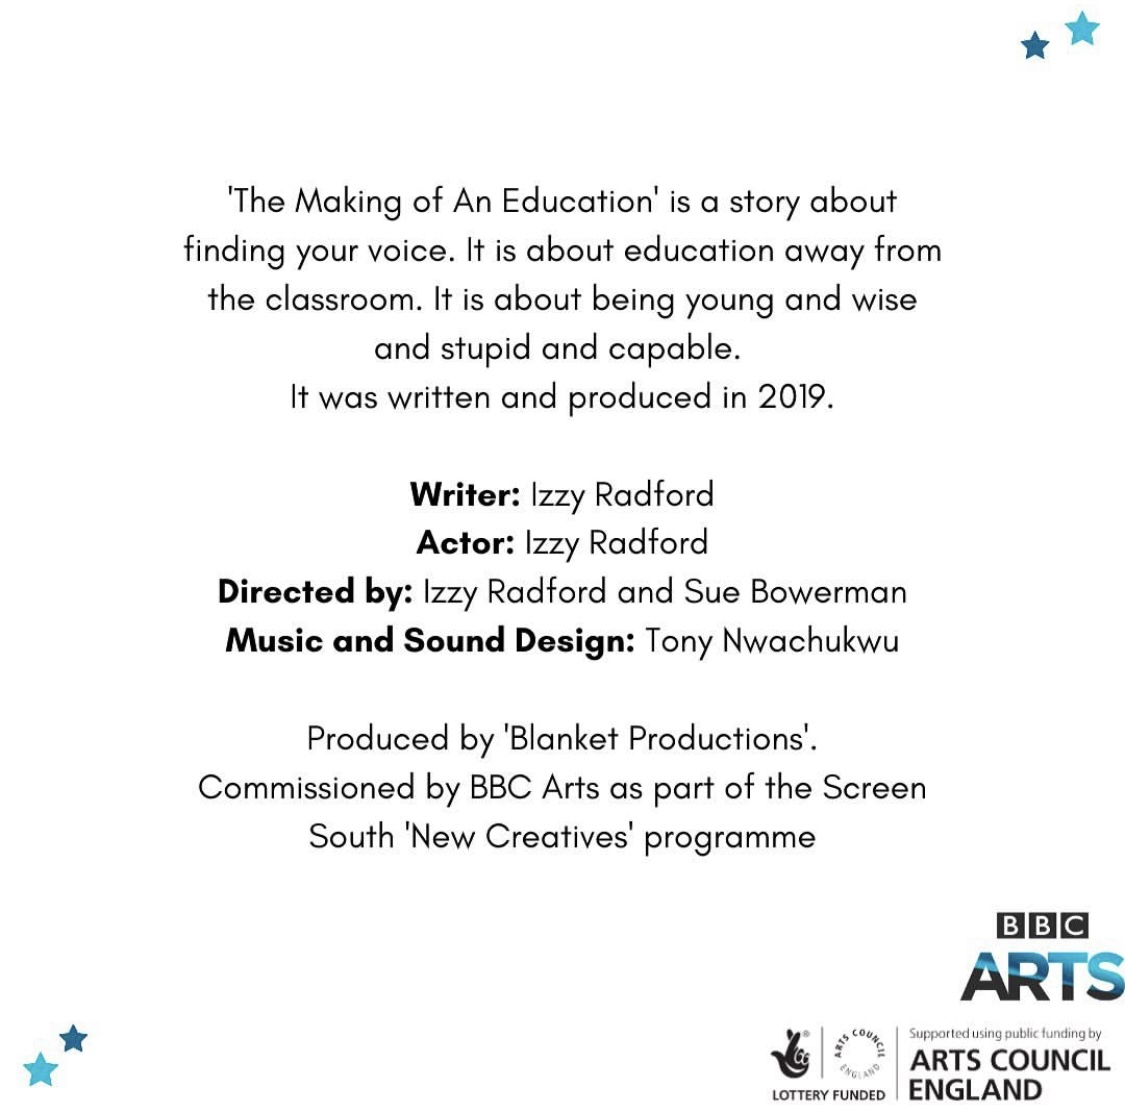 This is a promotional image of Izzy Radford's Making Of An Education. Here, a white screen with black writing credits Izzy and the producers who made her audio piece.